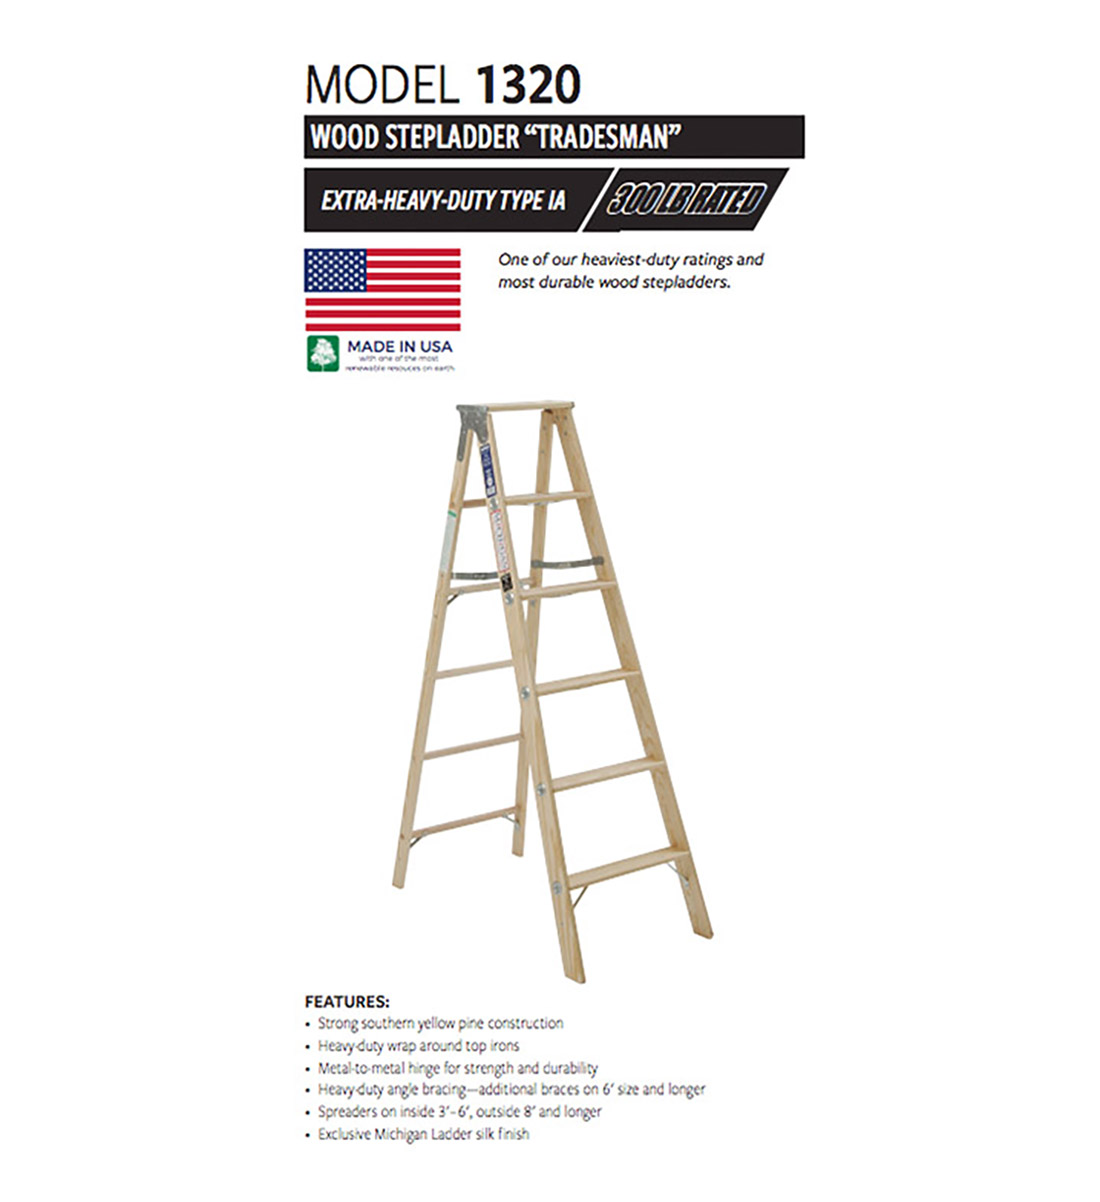 Tradesman Wood Stepladder